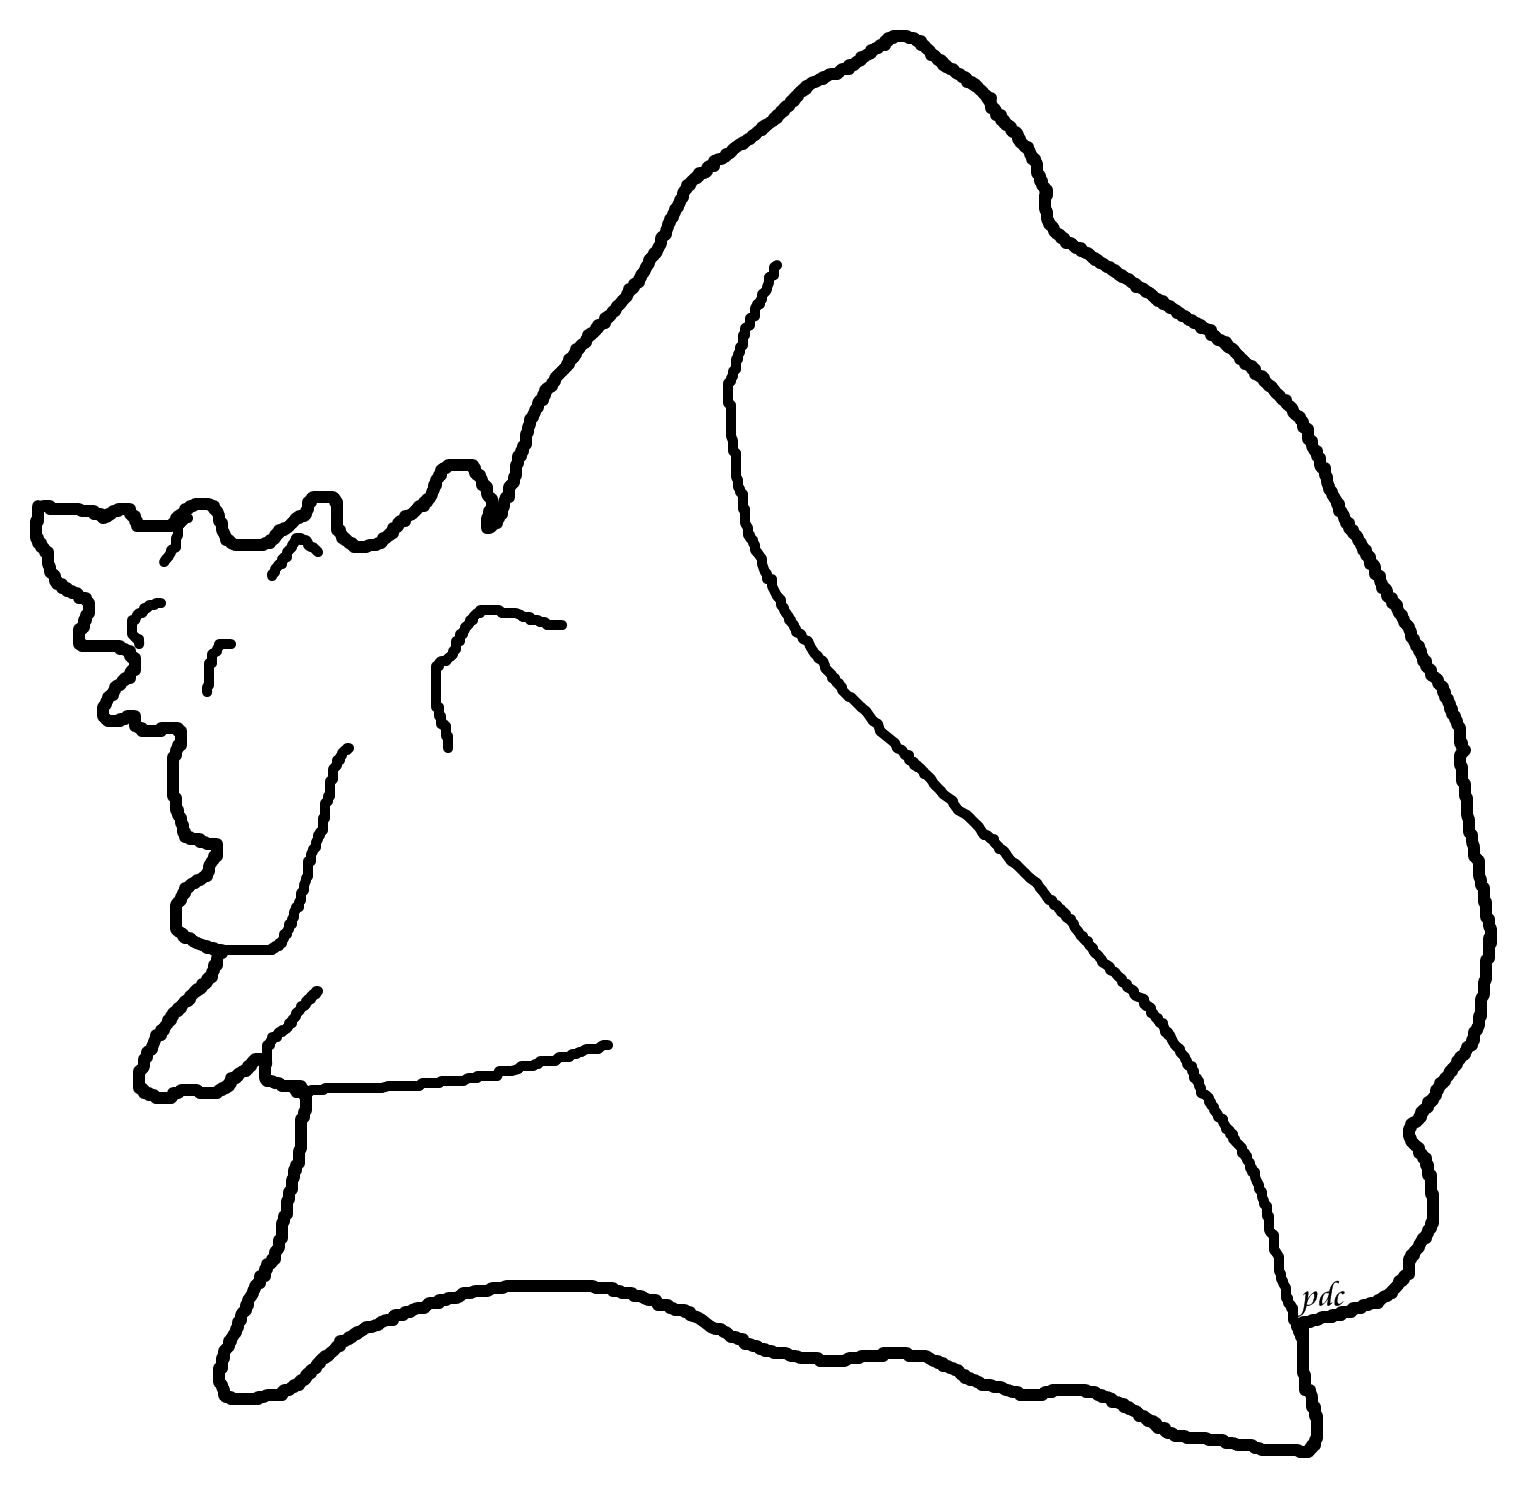 Queen Or Pink Conch Coloring Page Seashells By Millhill